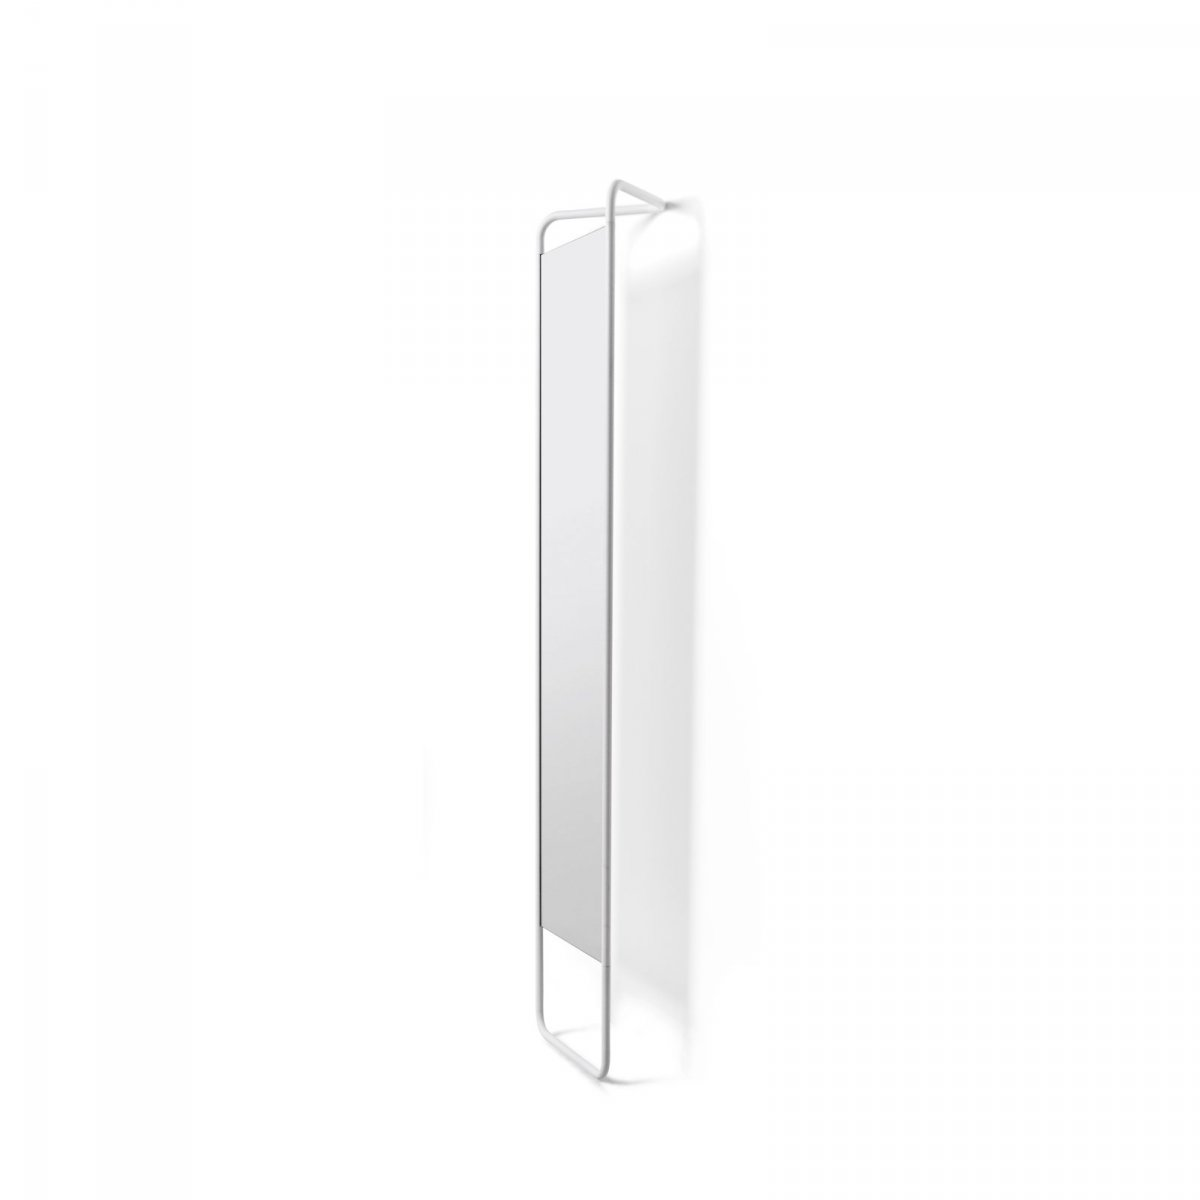 Kaschkasch Floor Mirror, white, side view.